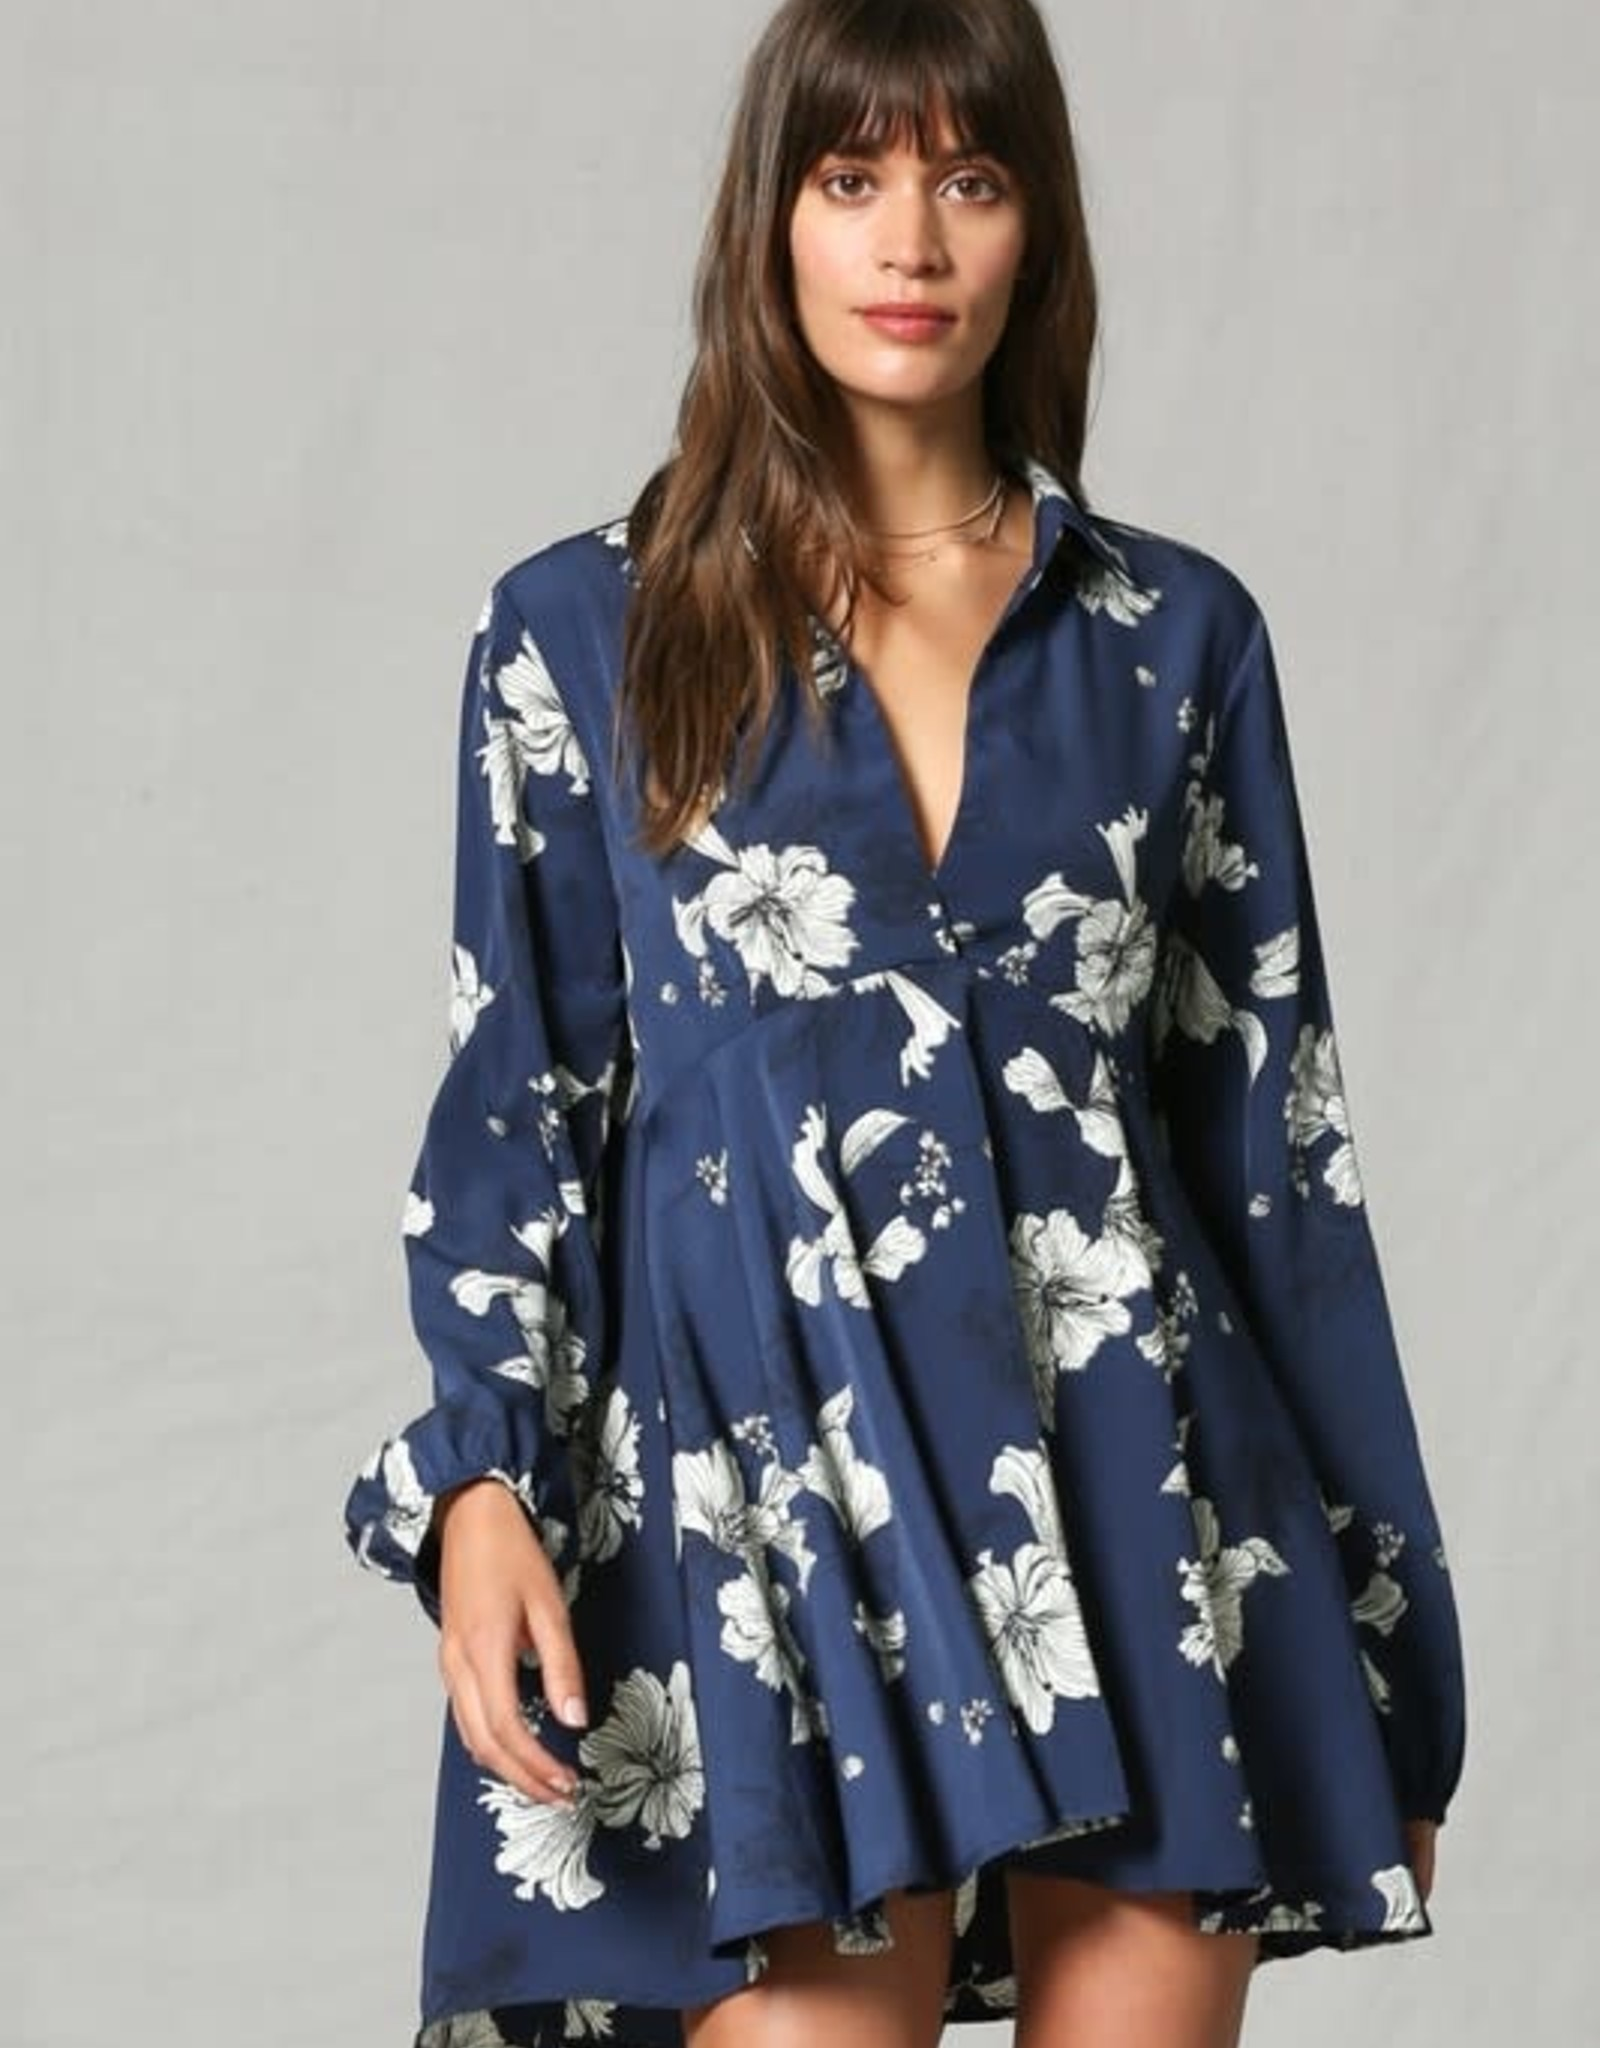 Carry With Class Tunic